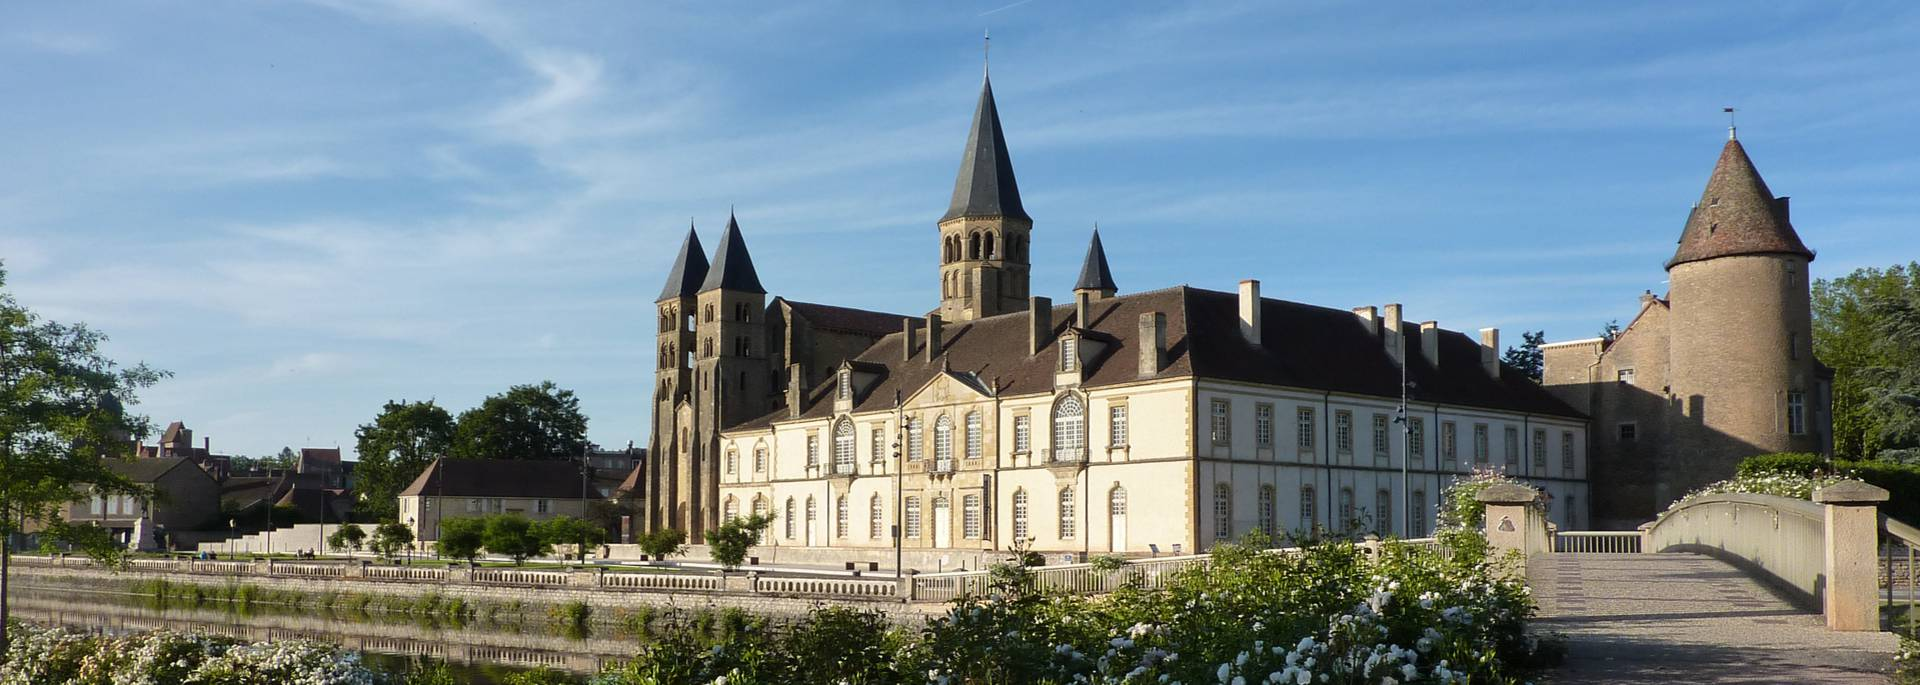 Paray-le-Monail et sa basilique romane. © Office de Tourisme de Paray-le-Monial.